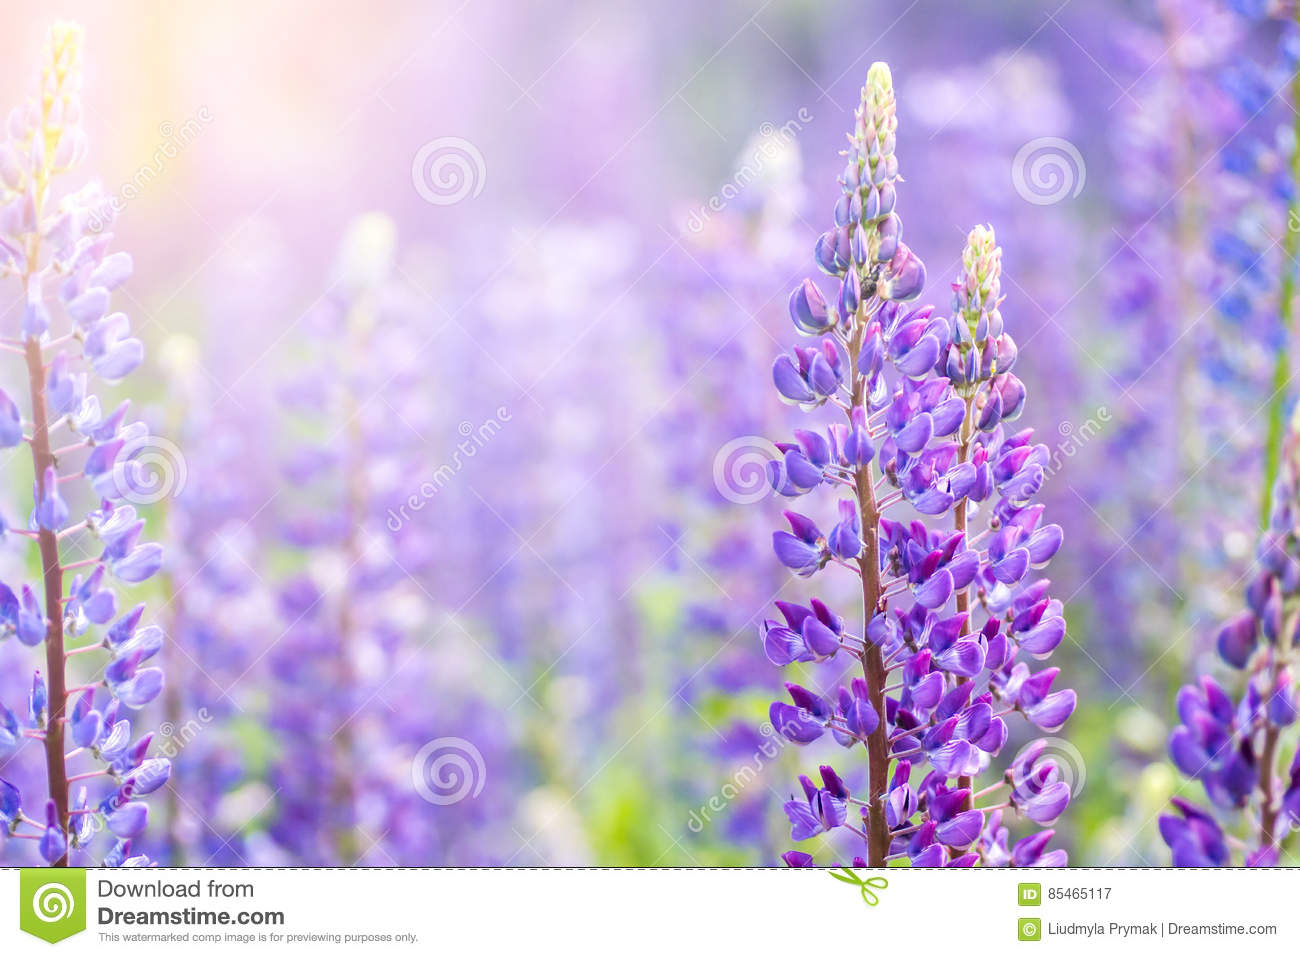 Plants for spring and summer - Blooming Lupine Flowers A Field Of Lupines Violet Spring And Summer Flowers